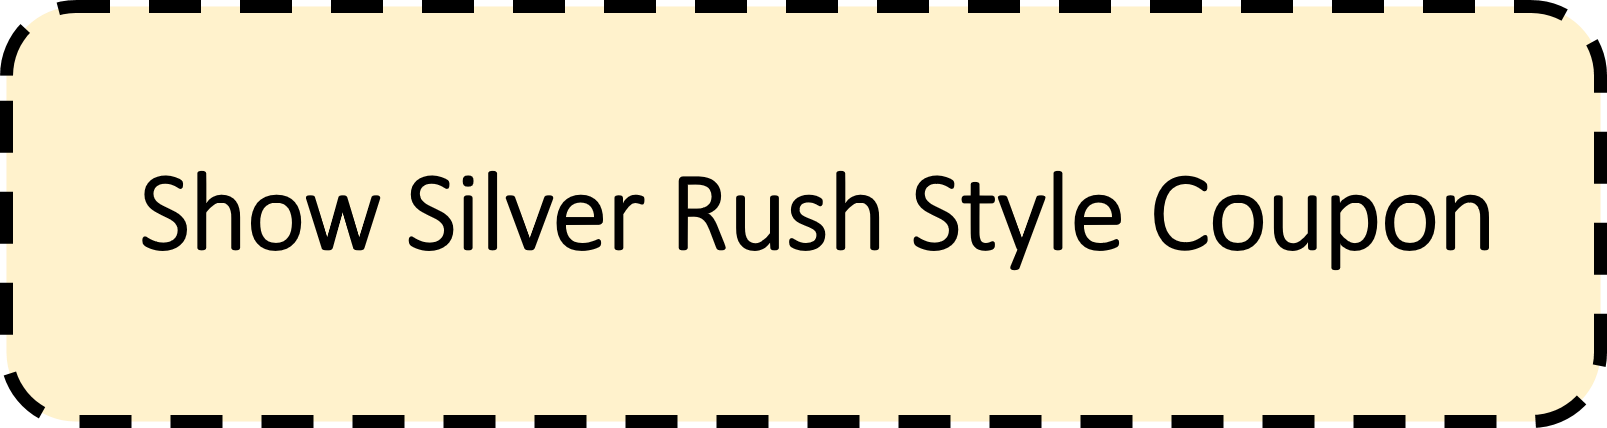 LA Style Rush Coupons - CouponBirds: Real Time Coupon ...